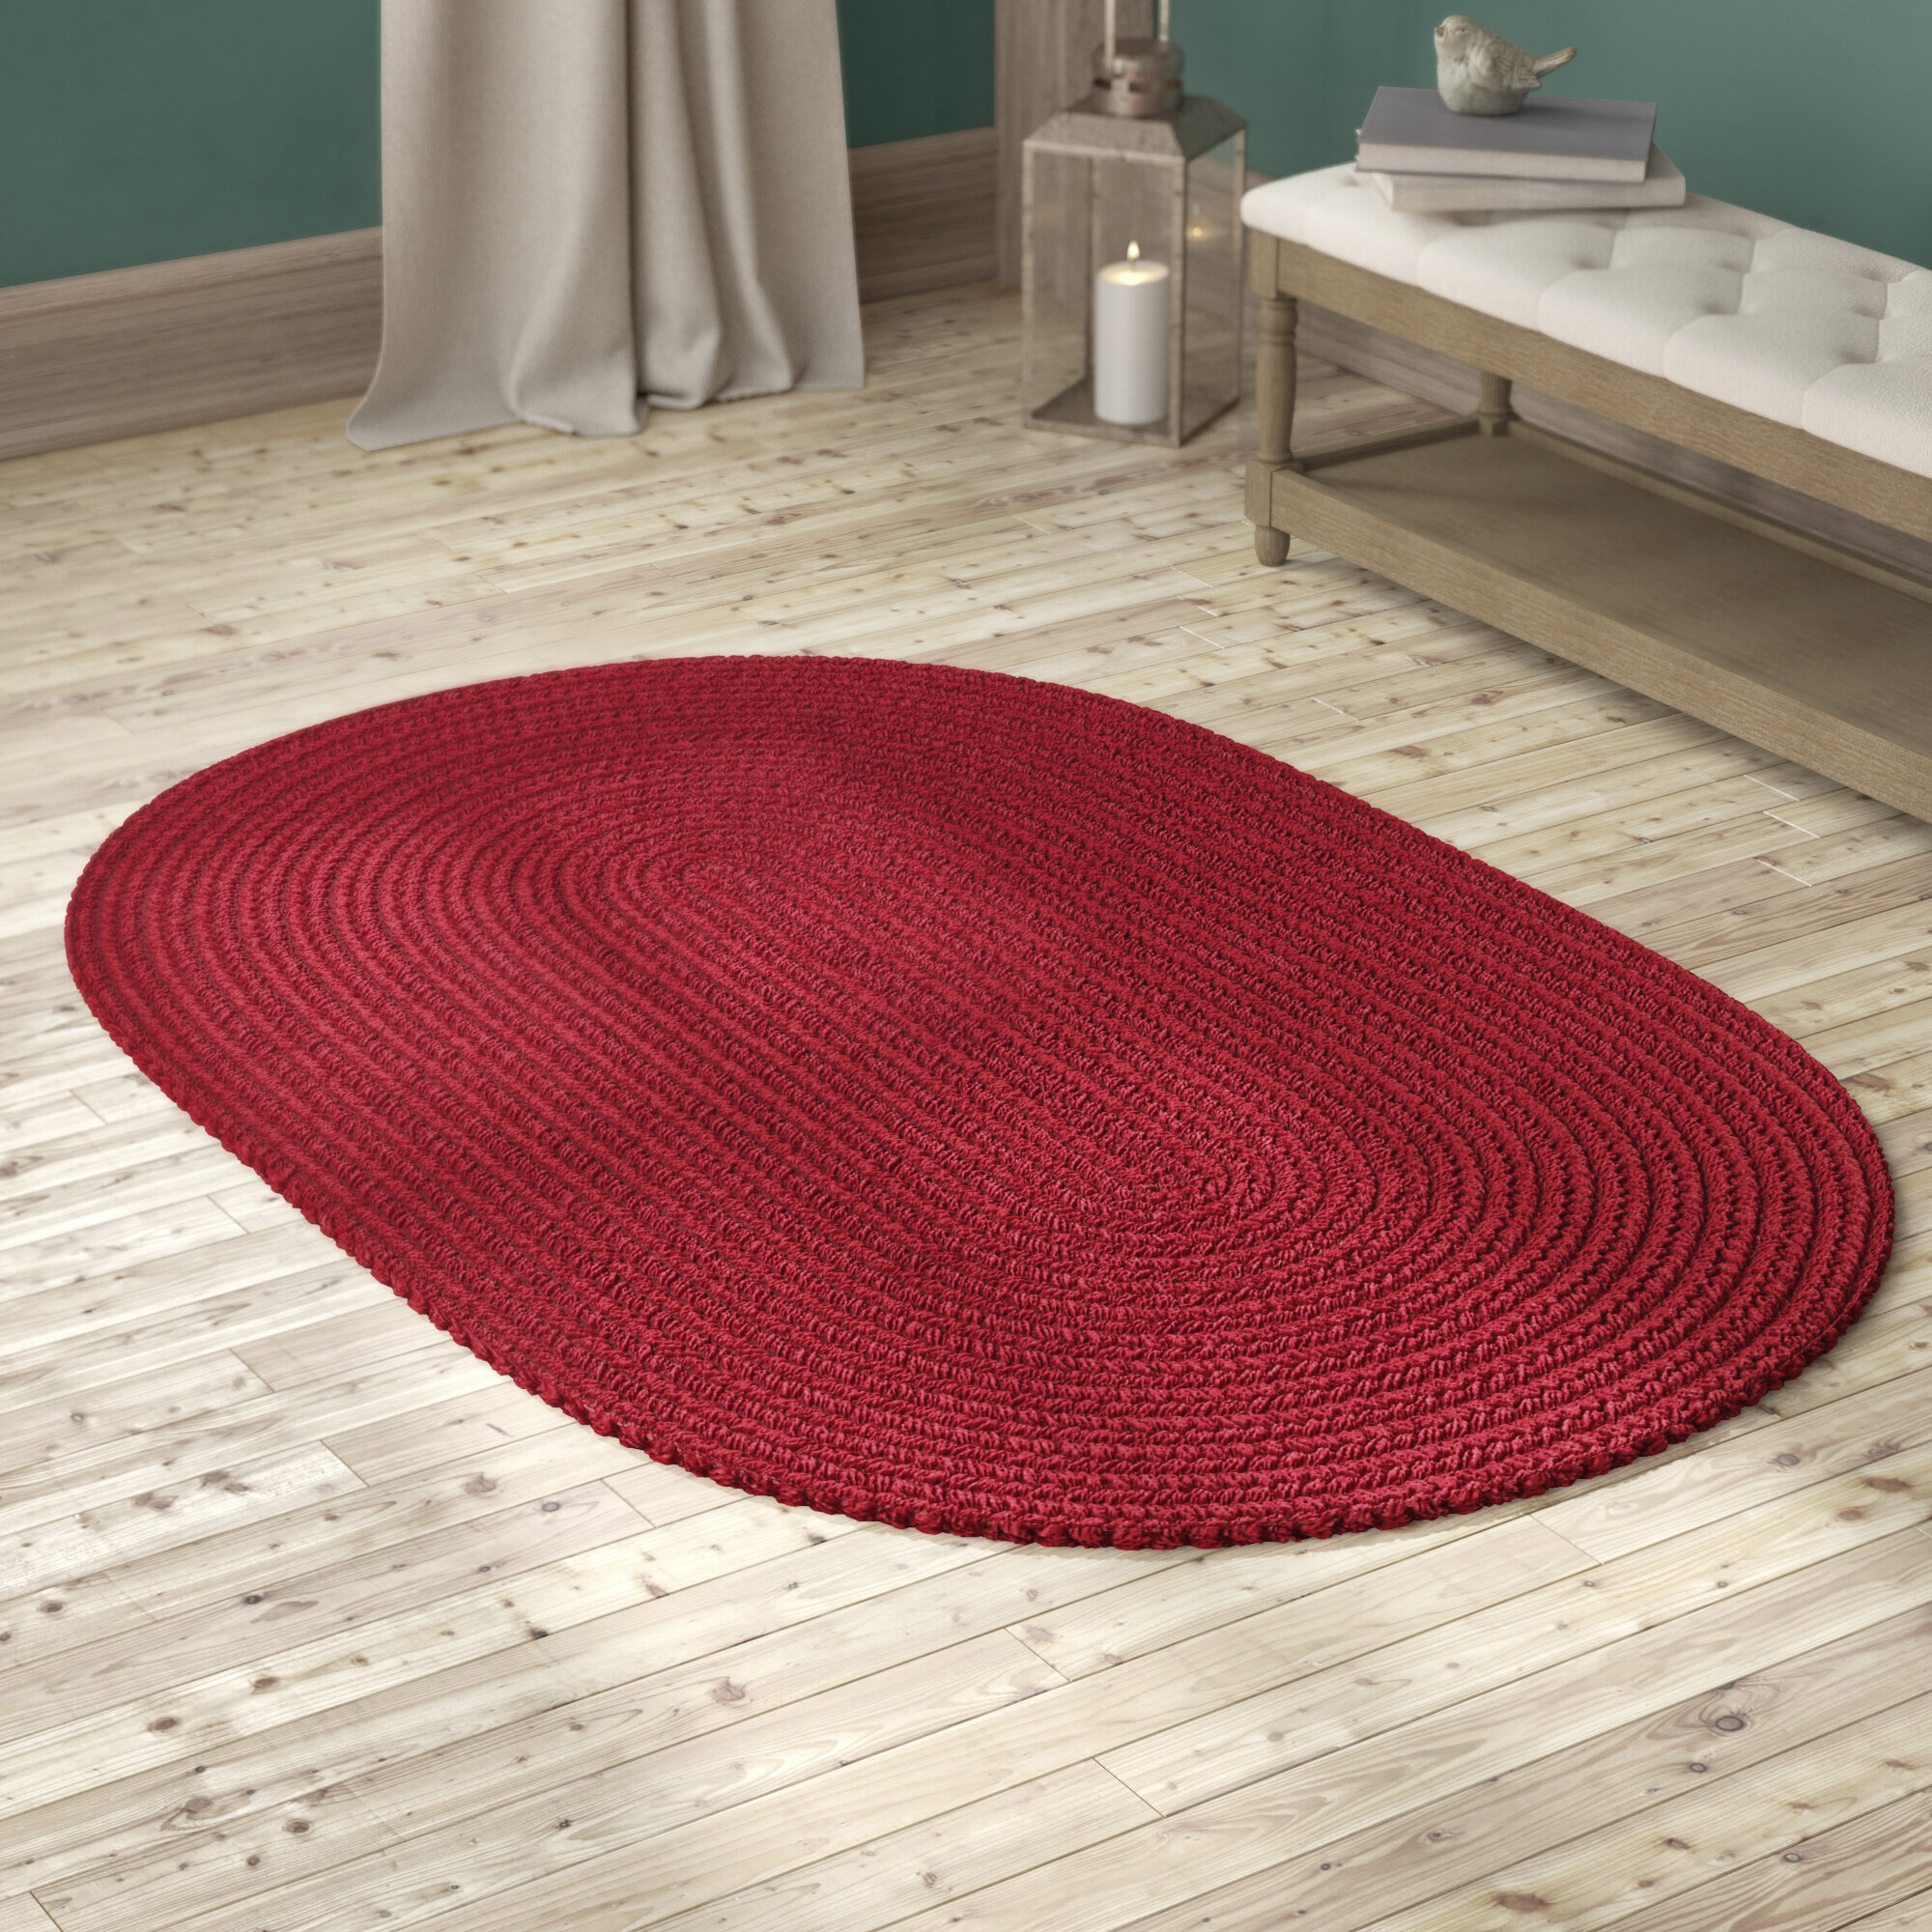 10 X 14 Oval Area Rugs You Ll Love In 2021 Wayfair